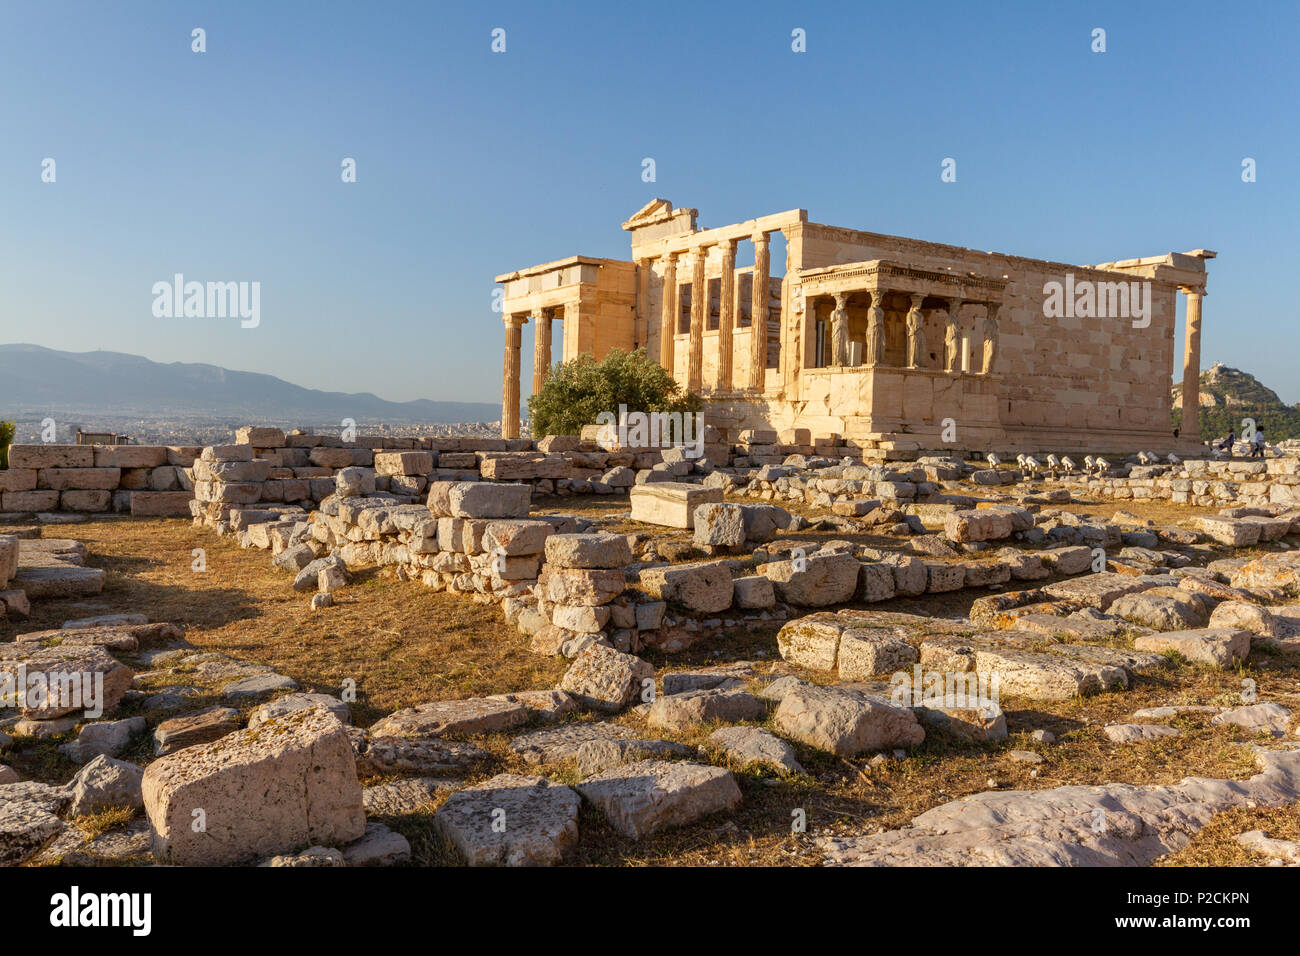 Erechtheum temple ruins on the Acropolis in Athens, Greece on an June afternoon - Stock Image